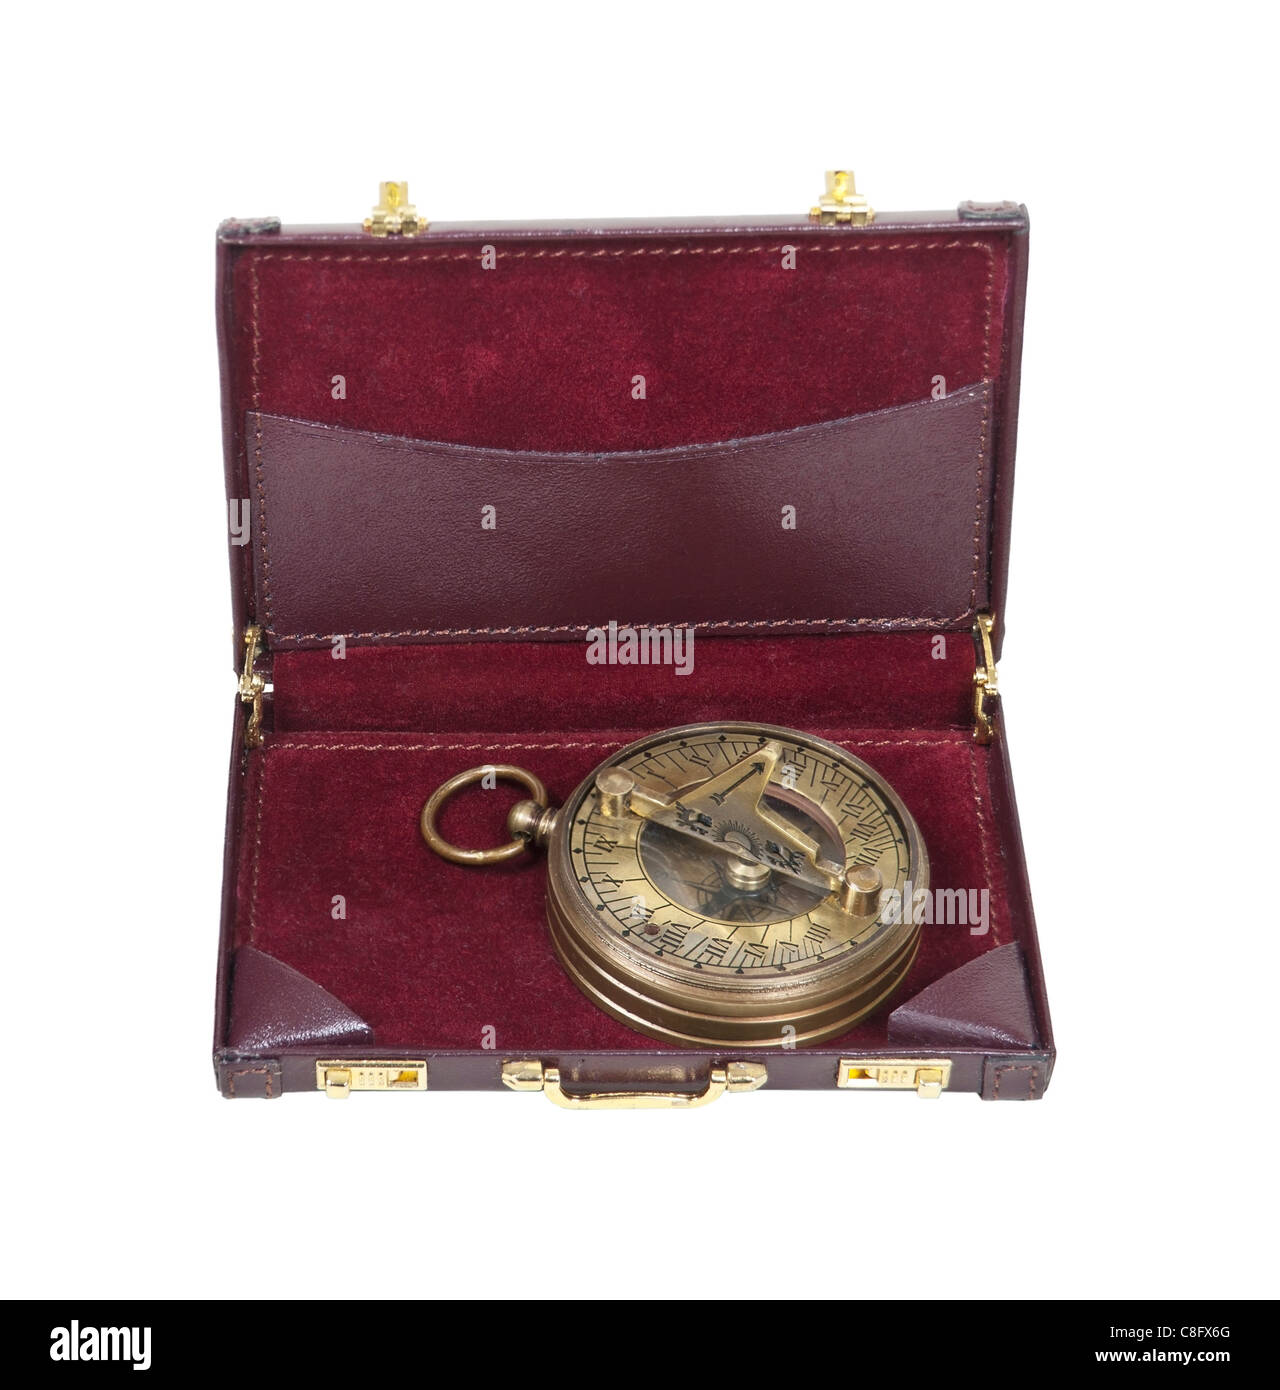 Brass sundial used to tell time as referenced by the sun in a leather briefcase - path included - Stock Image